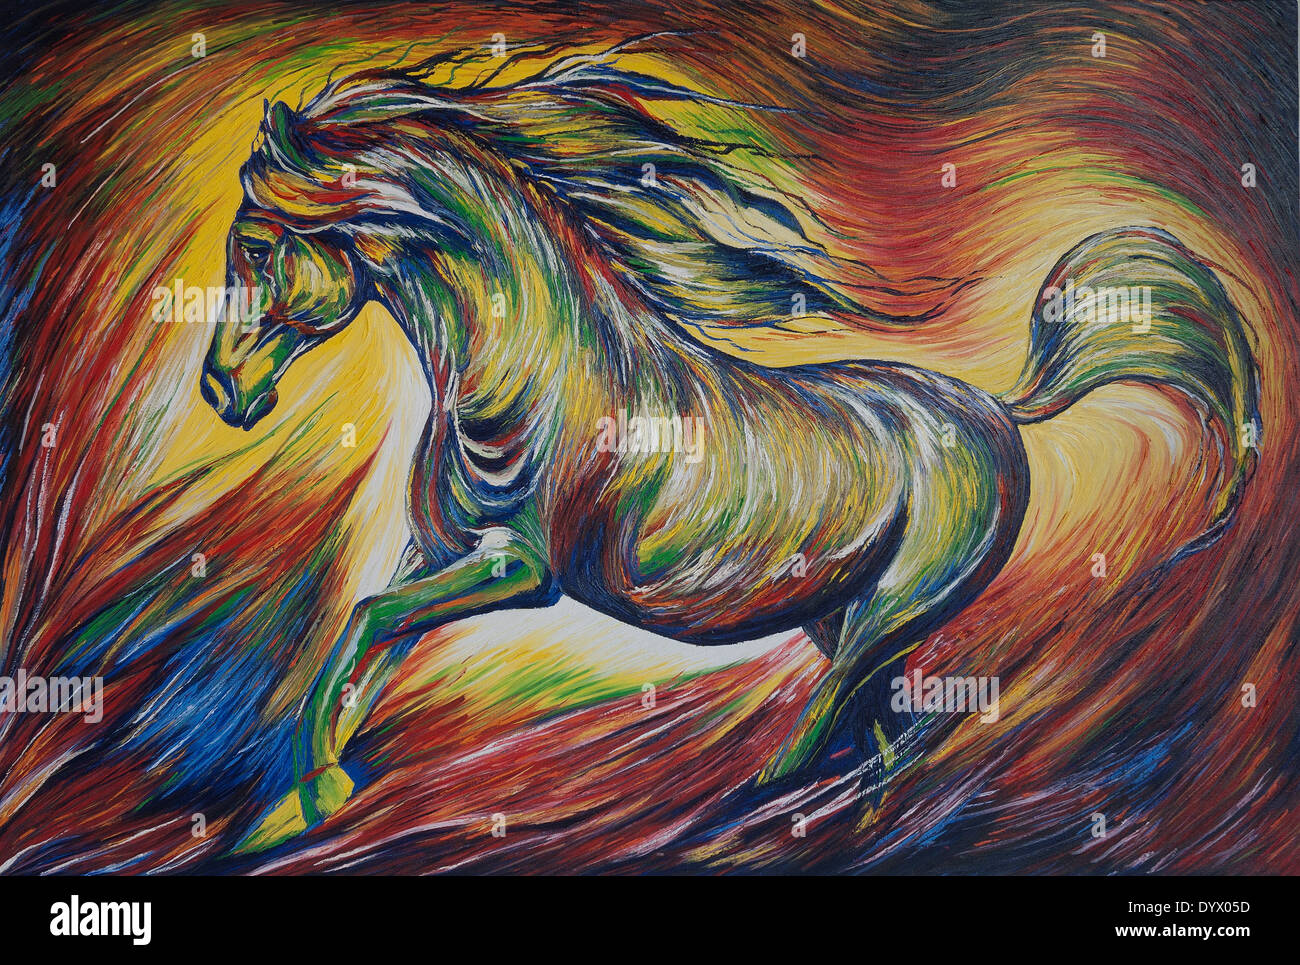 Abstract Horse Painting Stock Photo Alamy